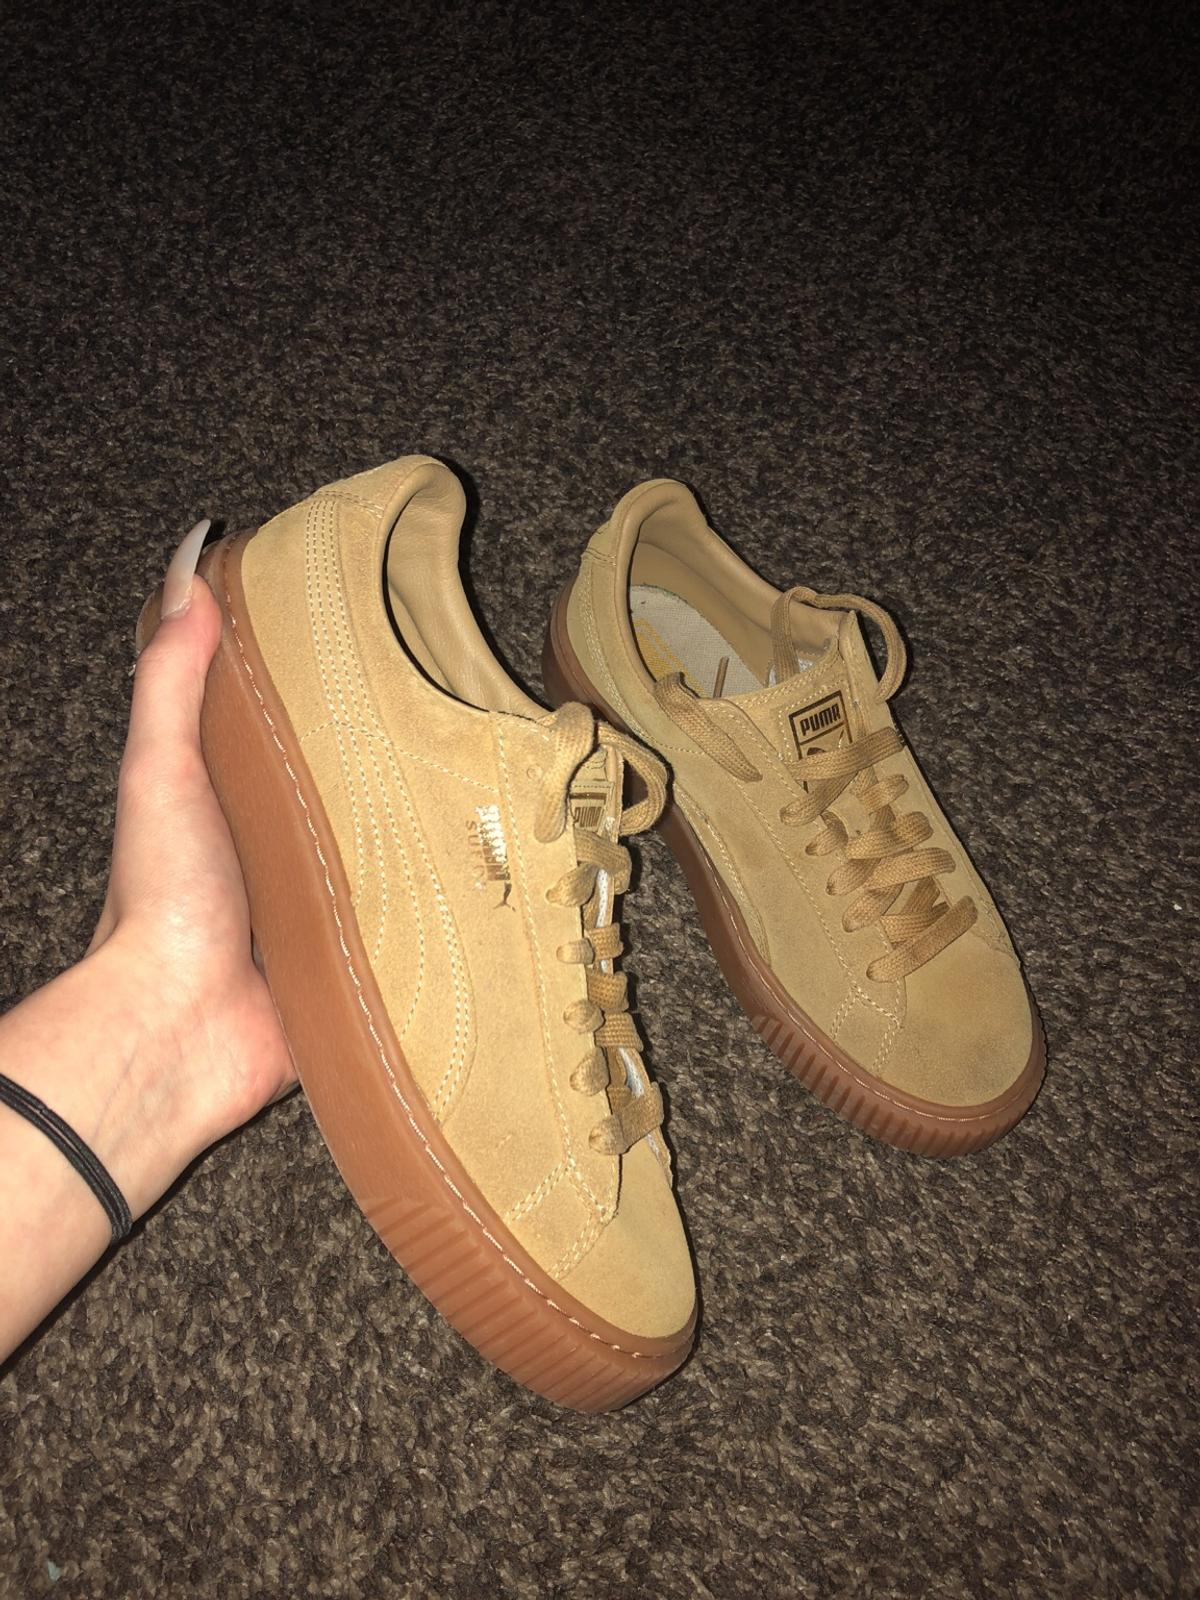 competitive price 6ab81 44c4b Puma Sand Creepers